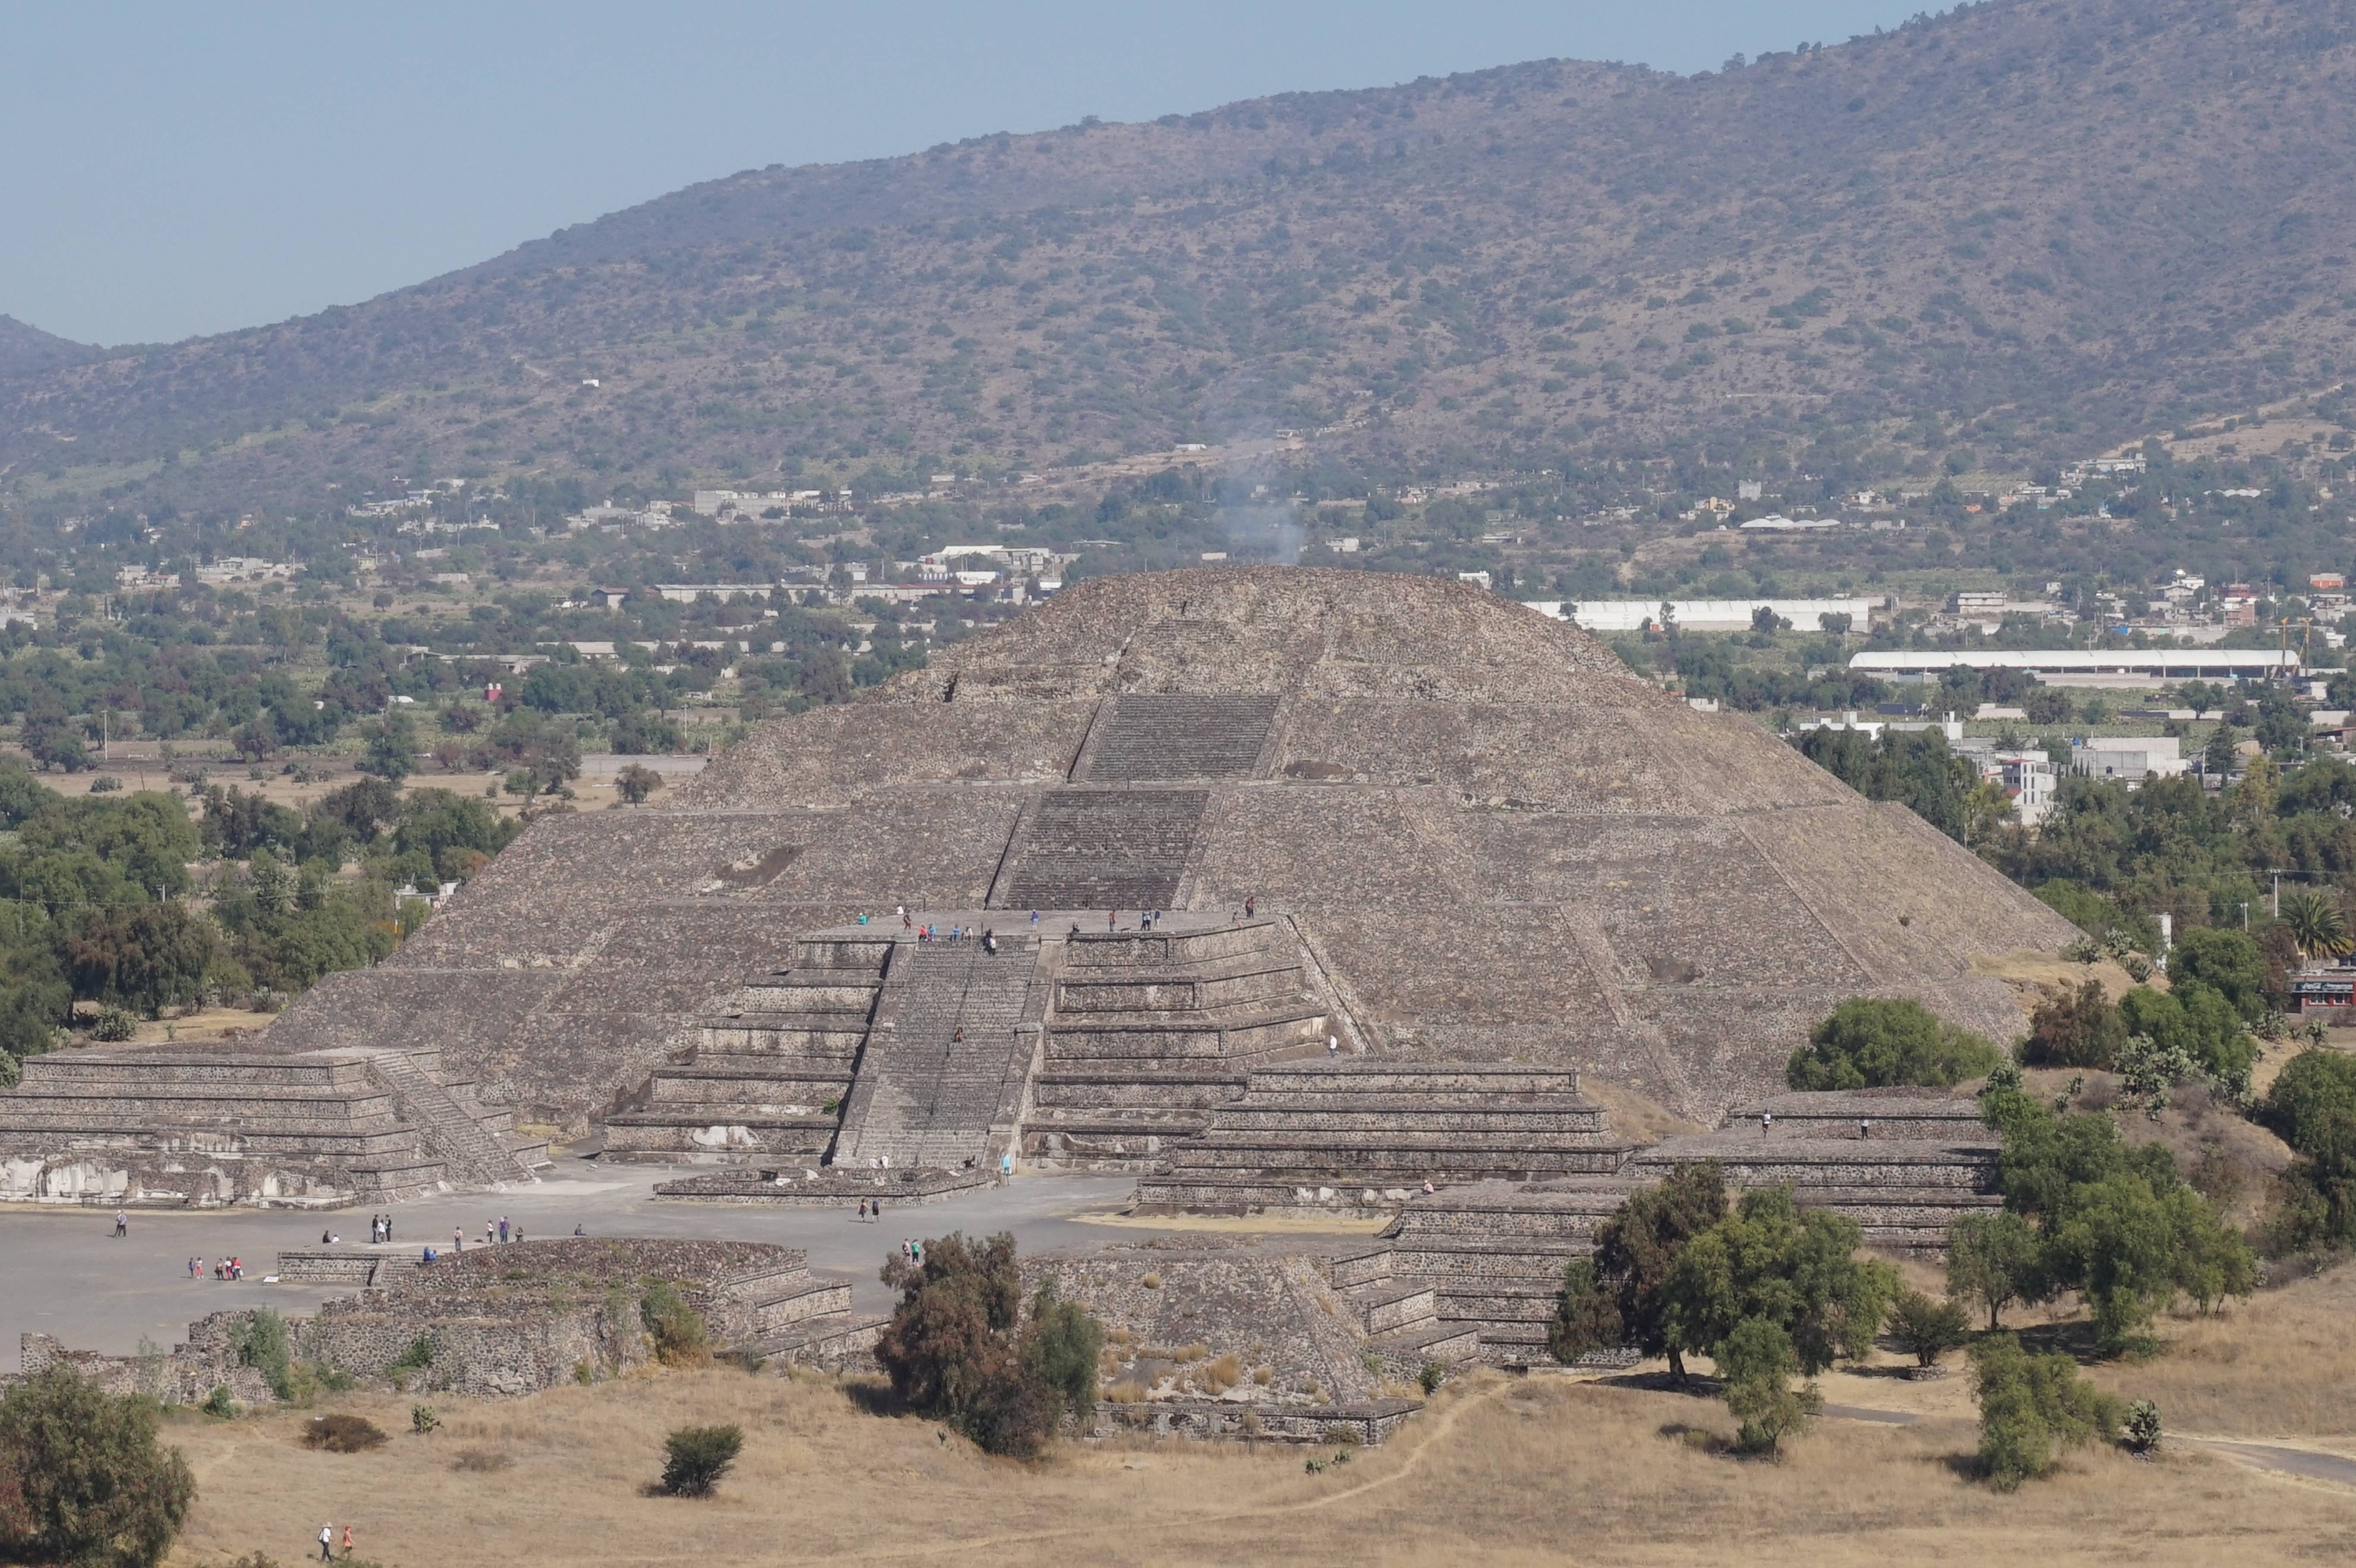 Photo 3: Teotihuacan